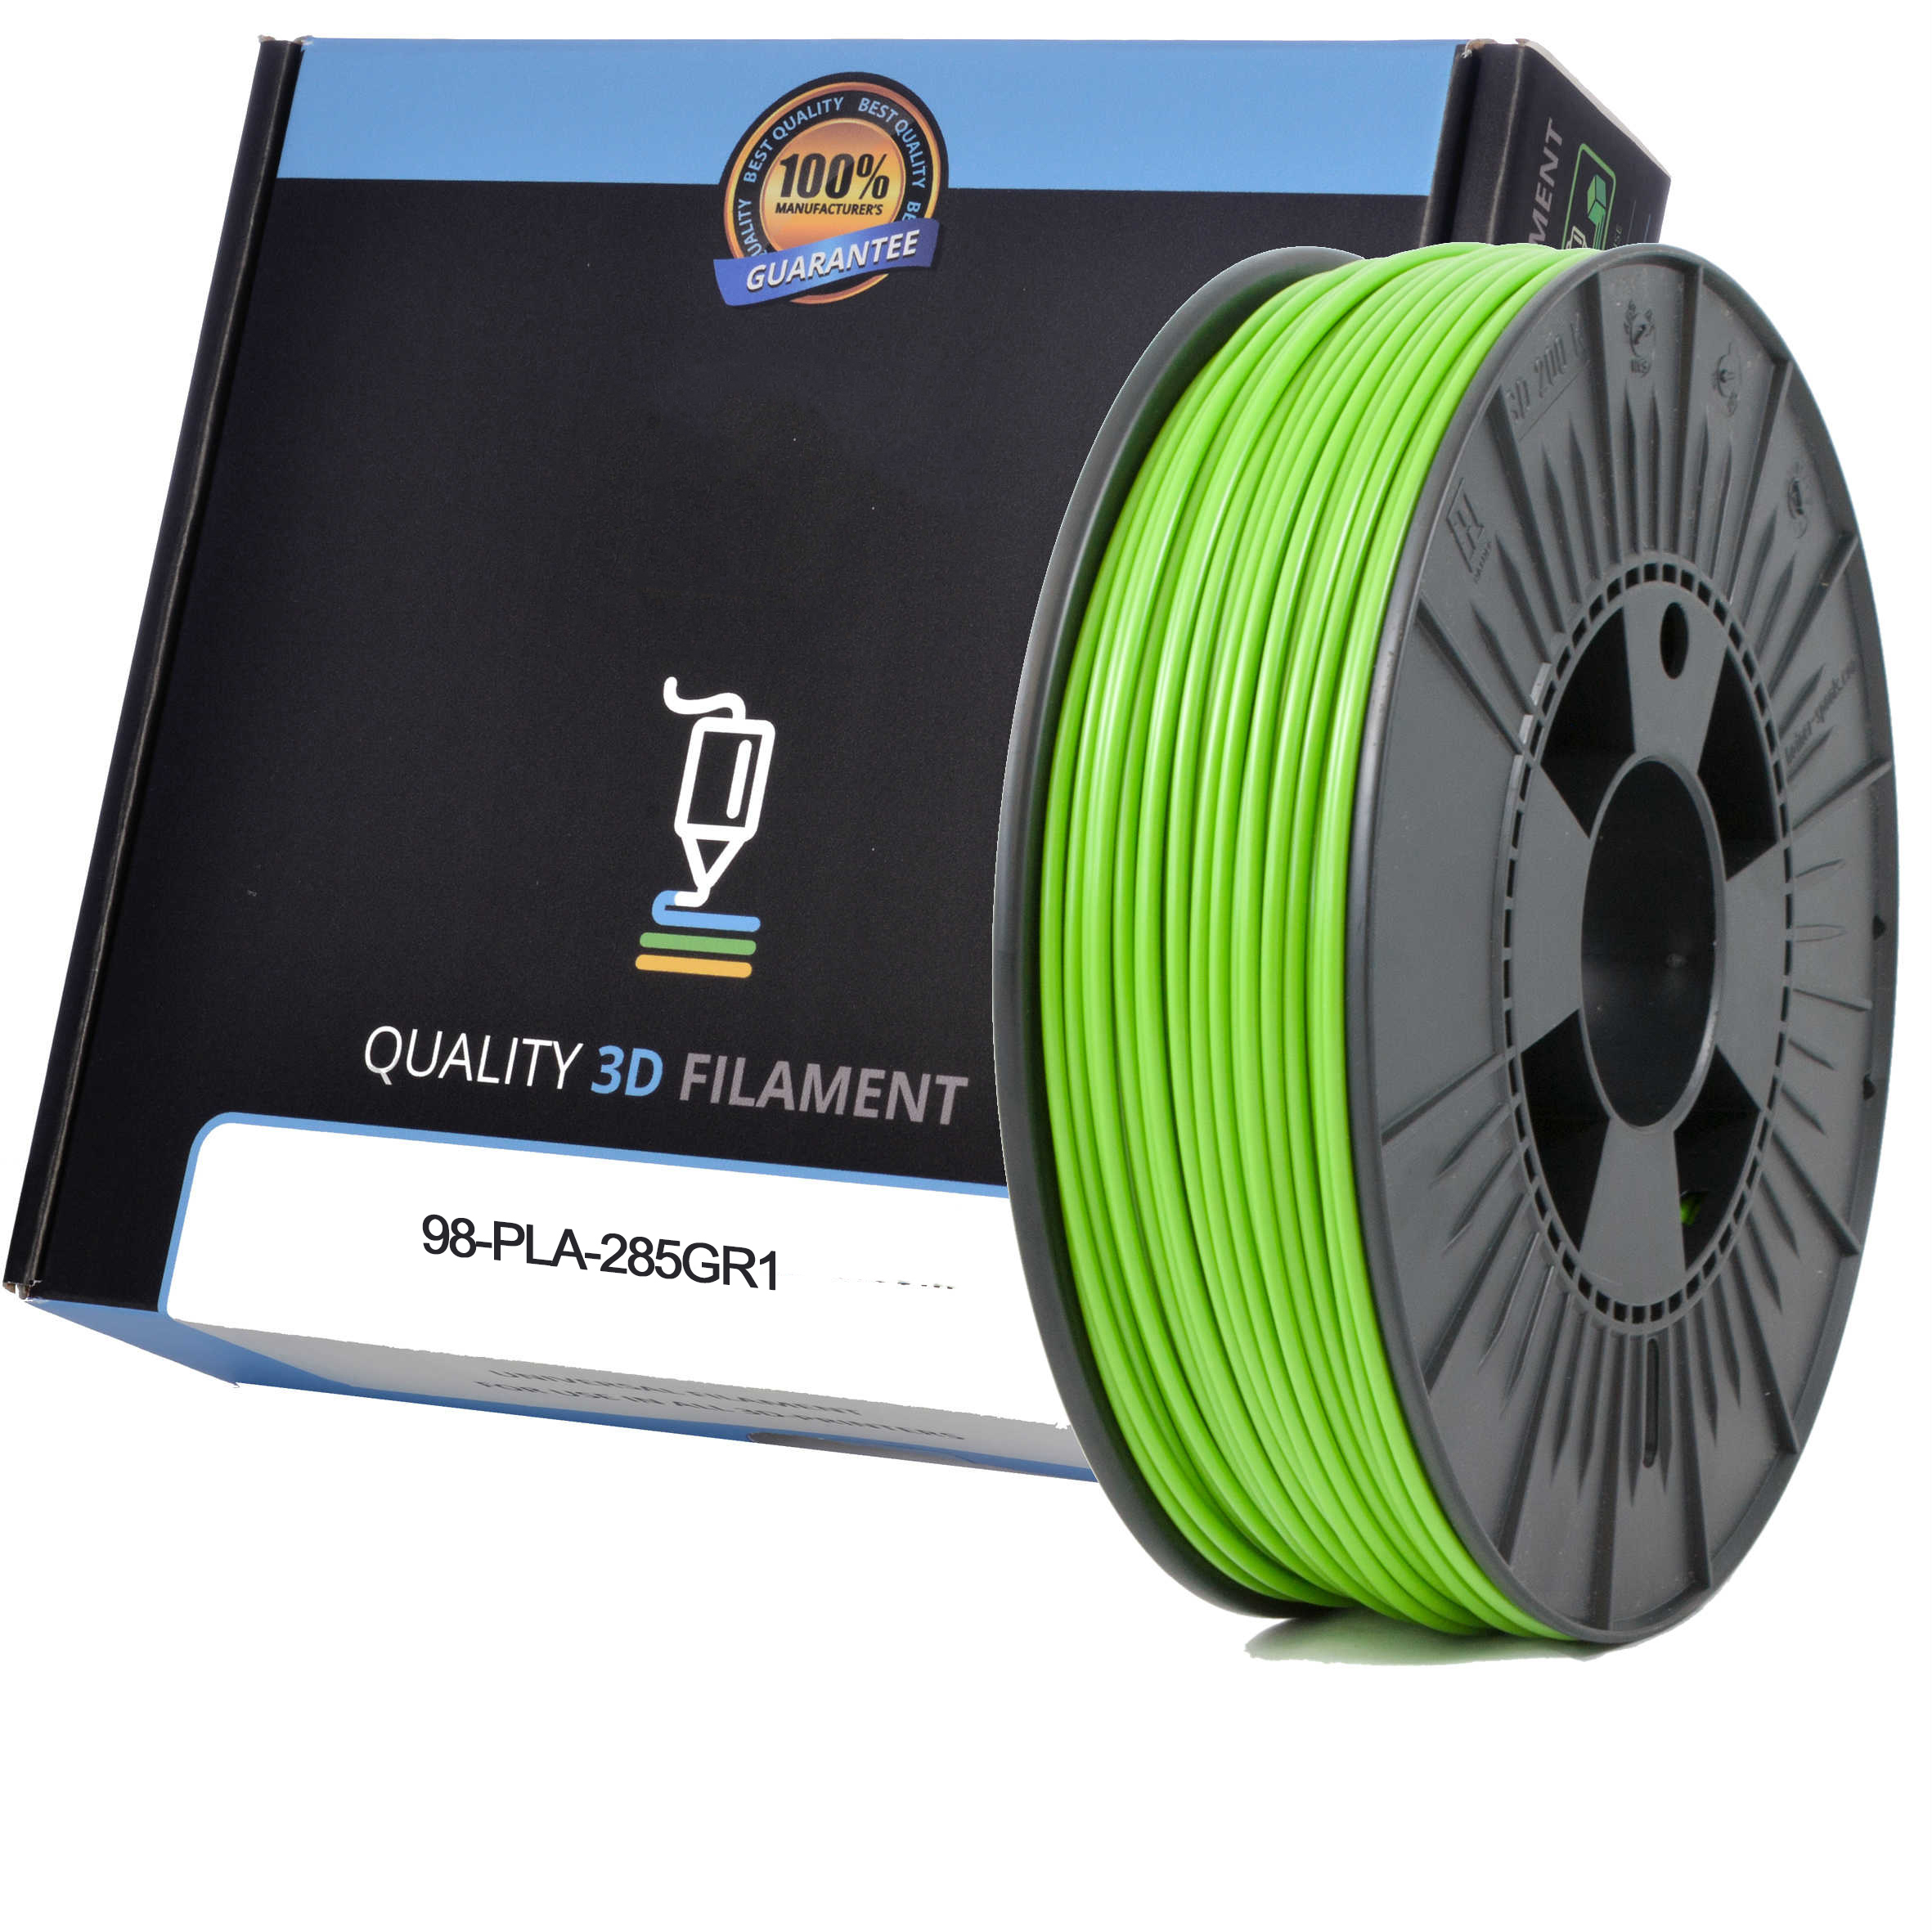 Premium Compatible PLA 2.85mm Apple Green 0.5kg 3D Filament (98-PLA-285GR1)